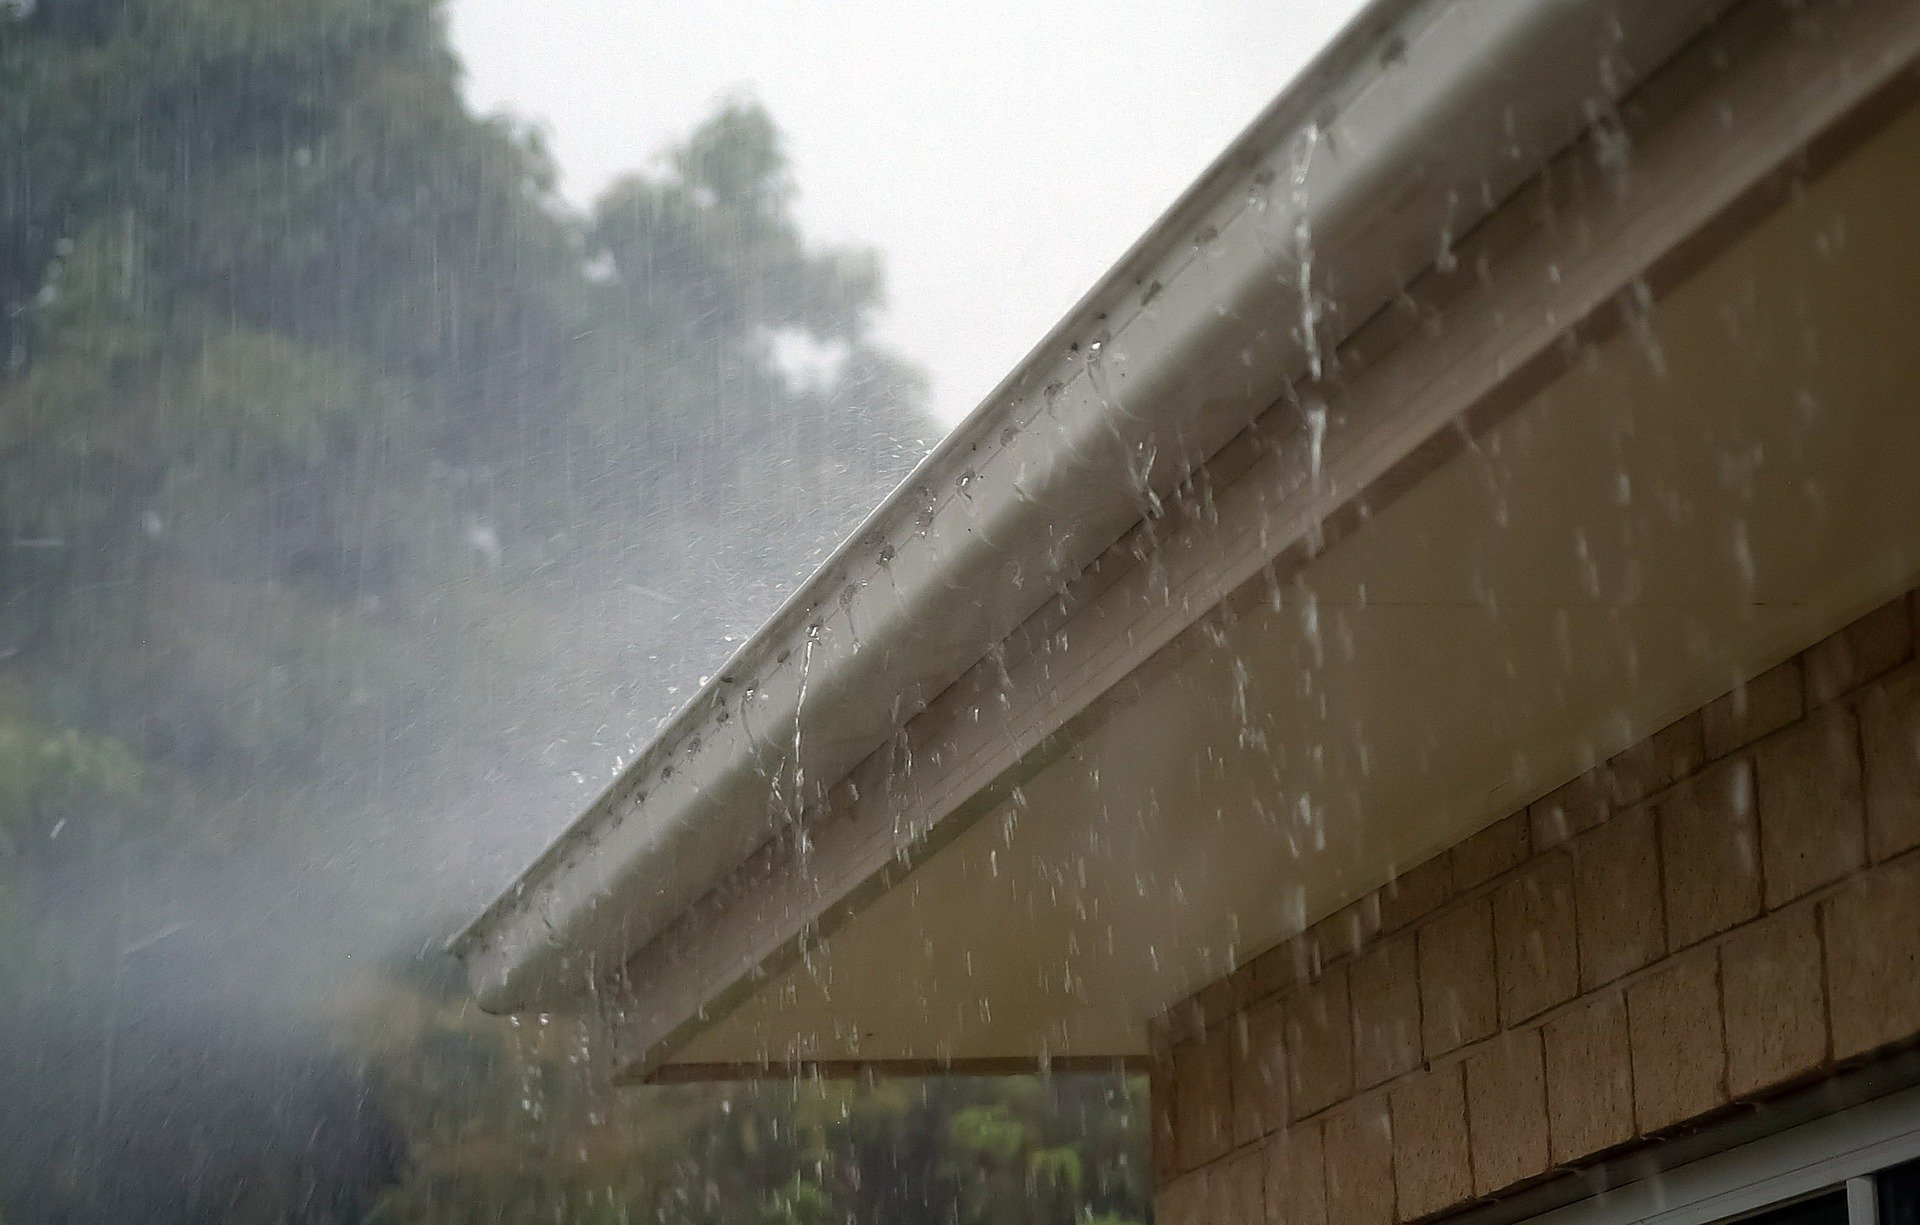 how do I stop rainwater from coming into the house?